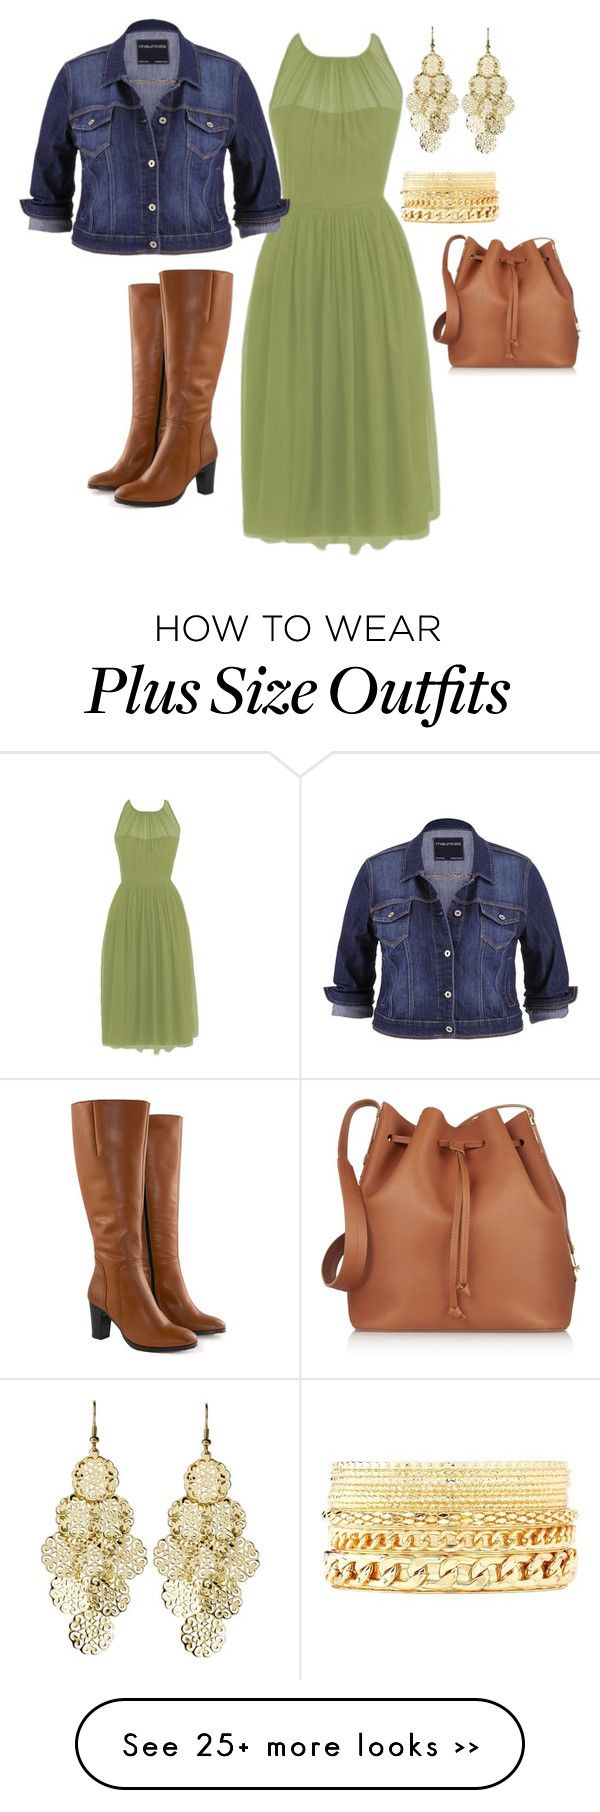 """Untitled #312"" by pinkpeony21 on Polyvore featuring Jilsen Quality Boots, maurices, Charlotte Russe, Alexia Crawford and Sophie Hulme"